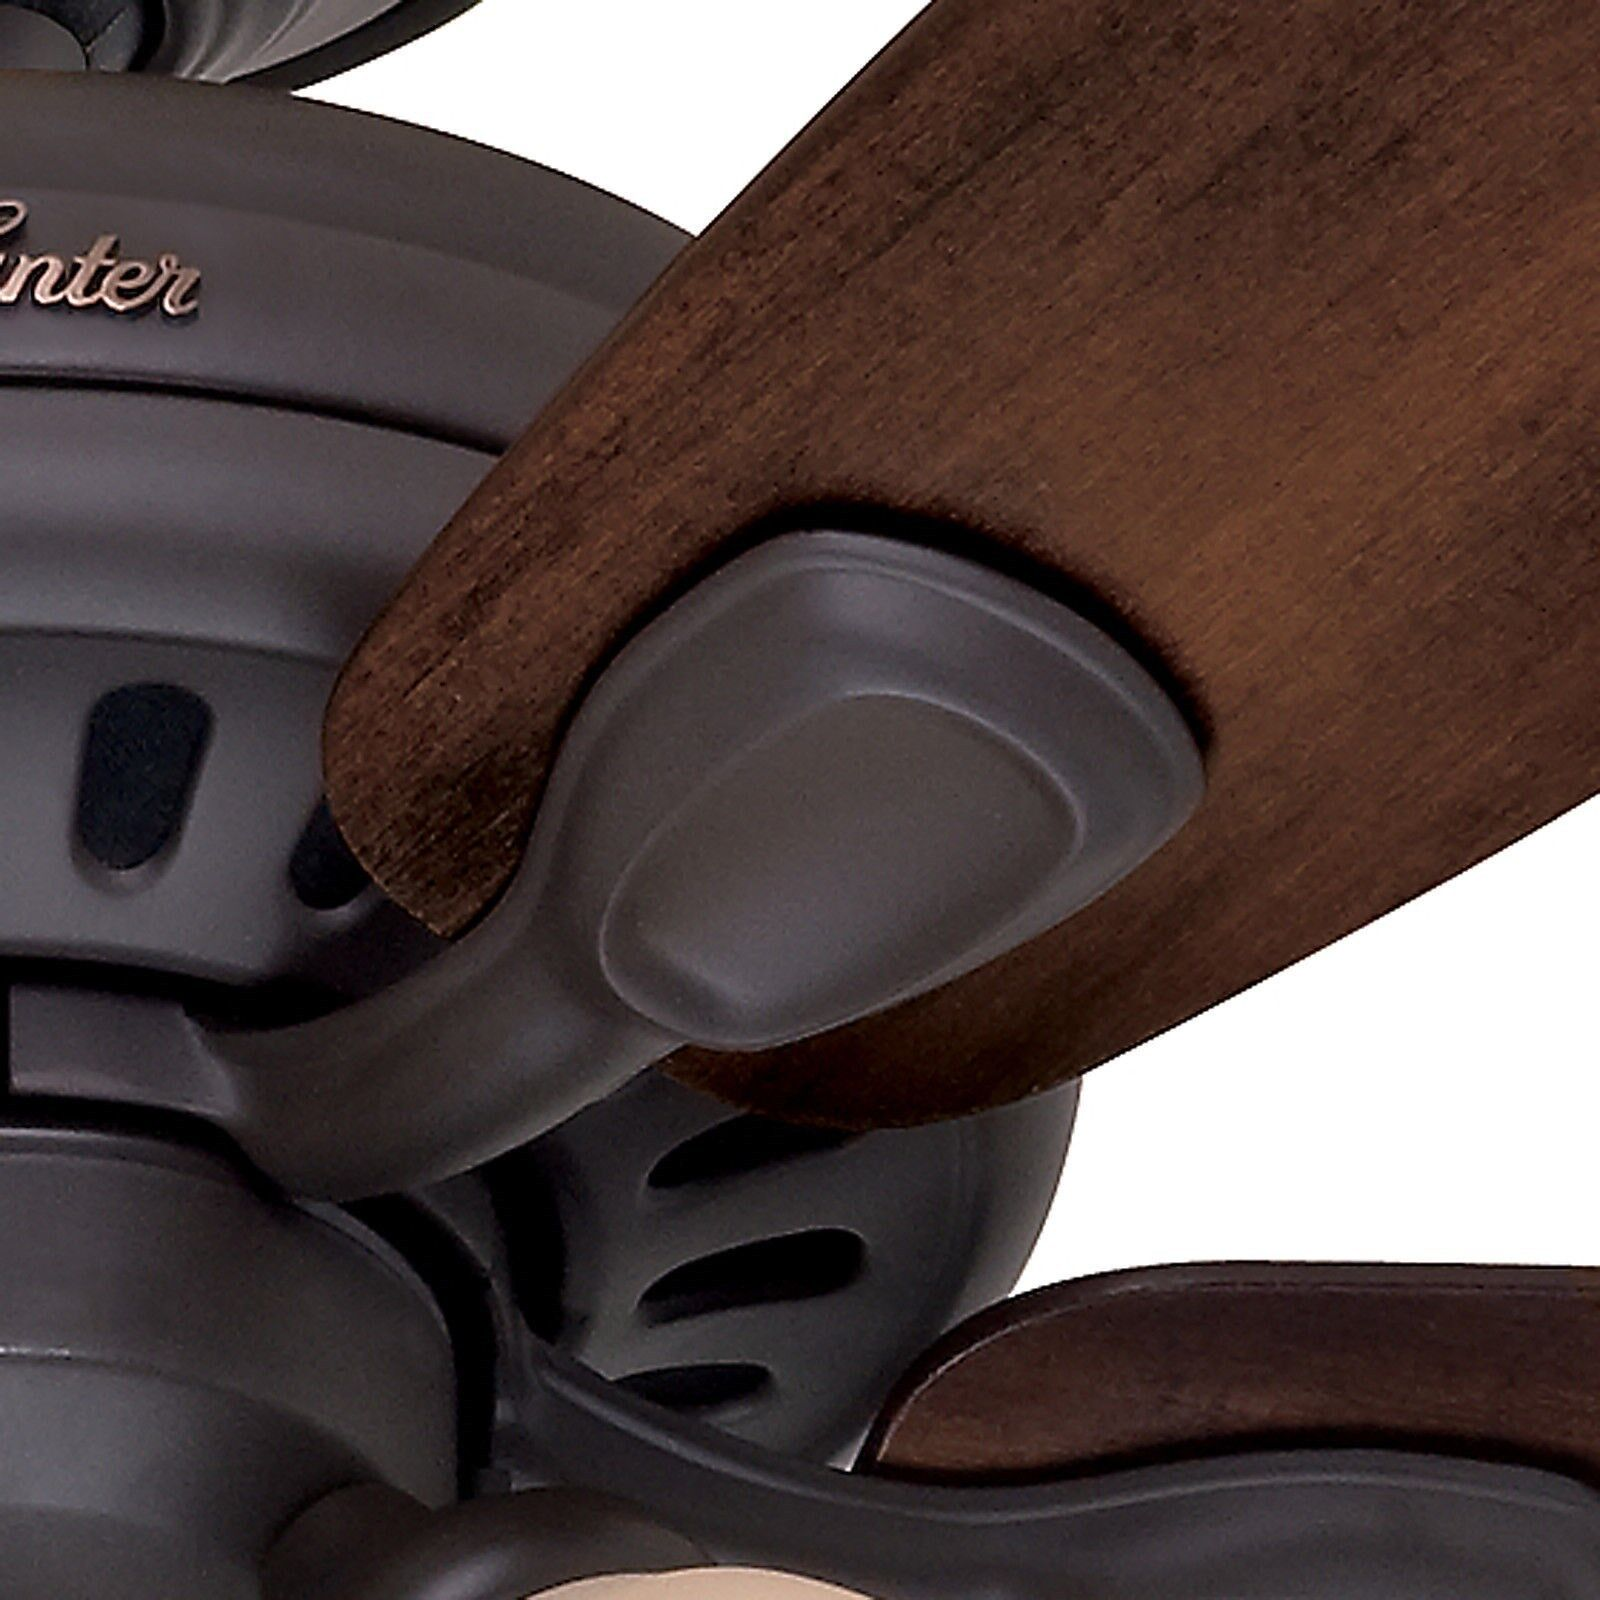 Hunter 52 Chatham New Bronze Ceiling Fan With Light At: Hunter 52 In. New Bronze Ceiling Fan With Light & Remote